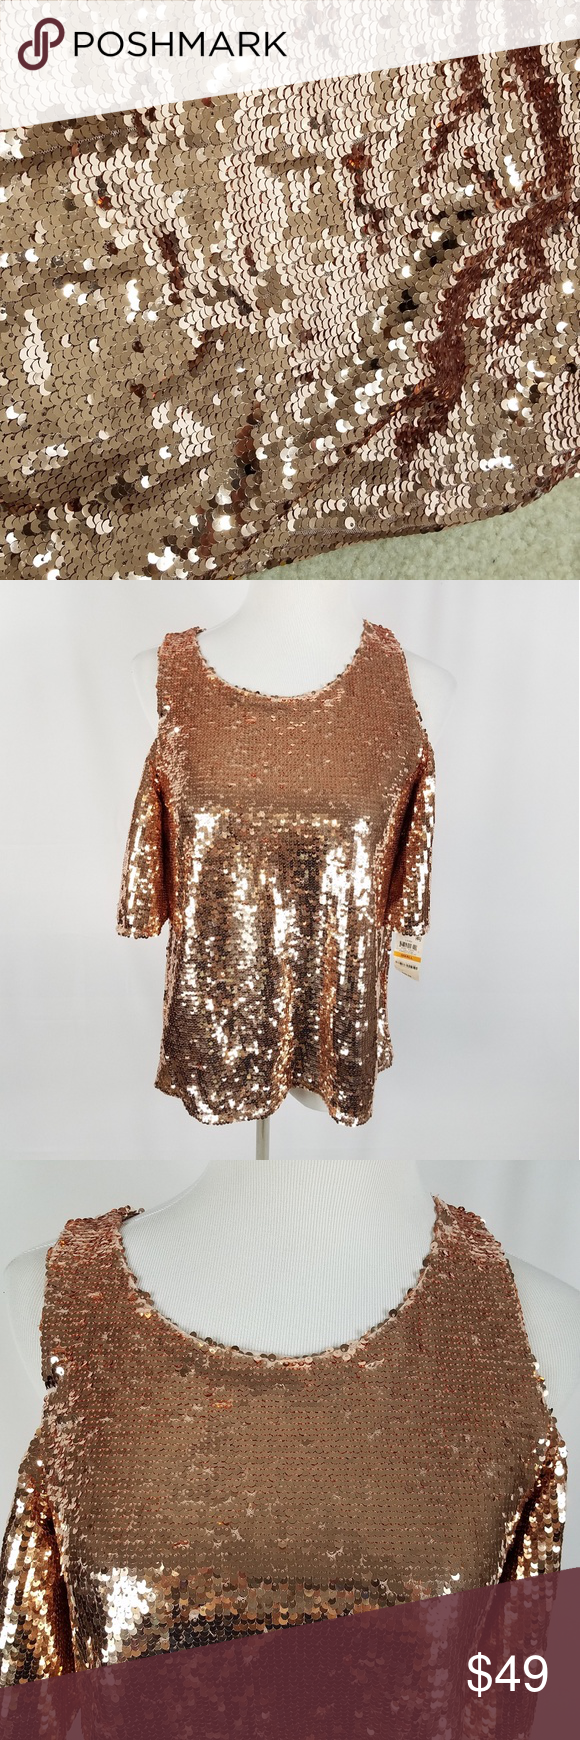 b4643fd3ff705b Nwt Inc sequin rose gold cold shoulder top NWT lined short sleeves. Rose  gold party top. INC International Concepts Tops Blouses